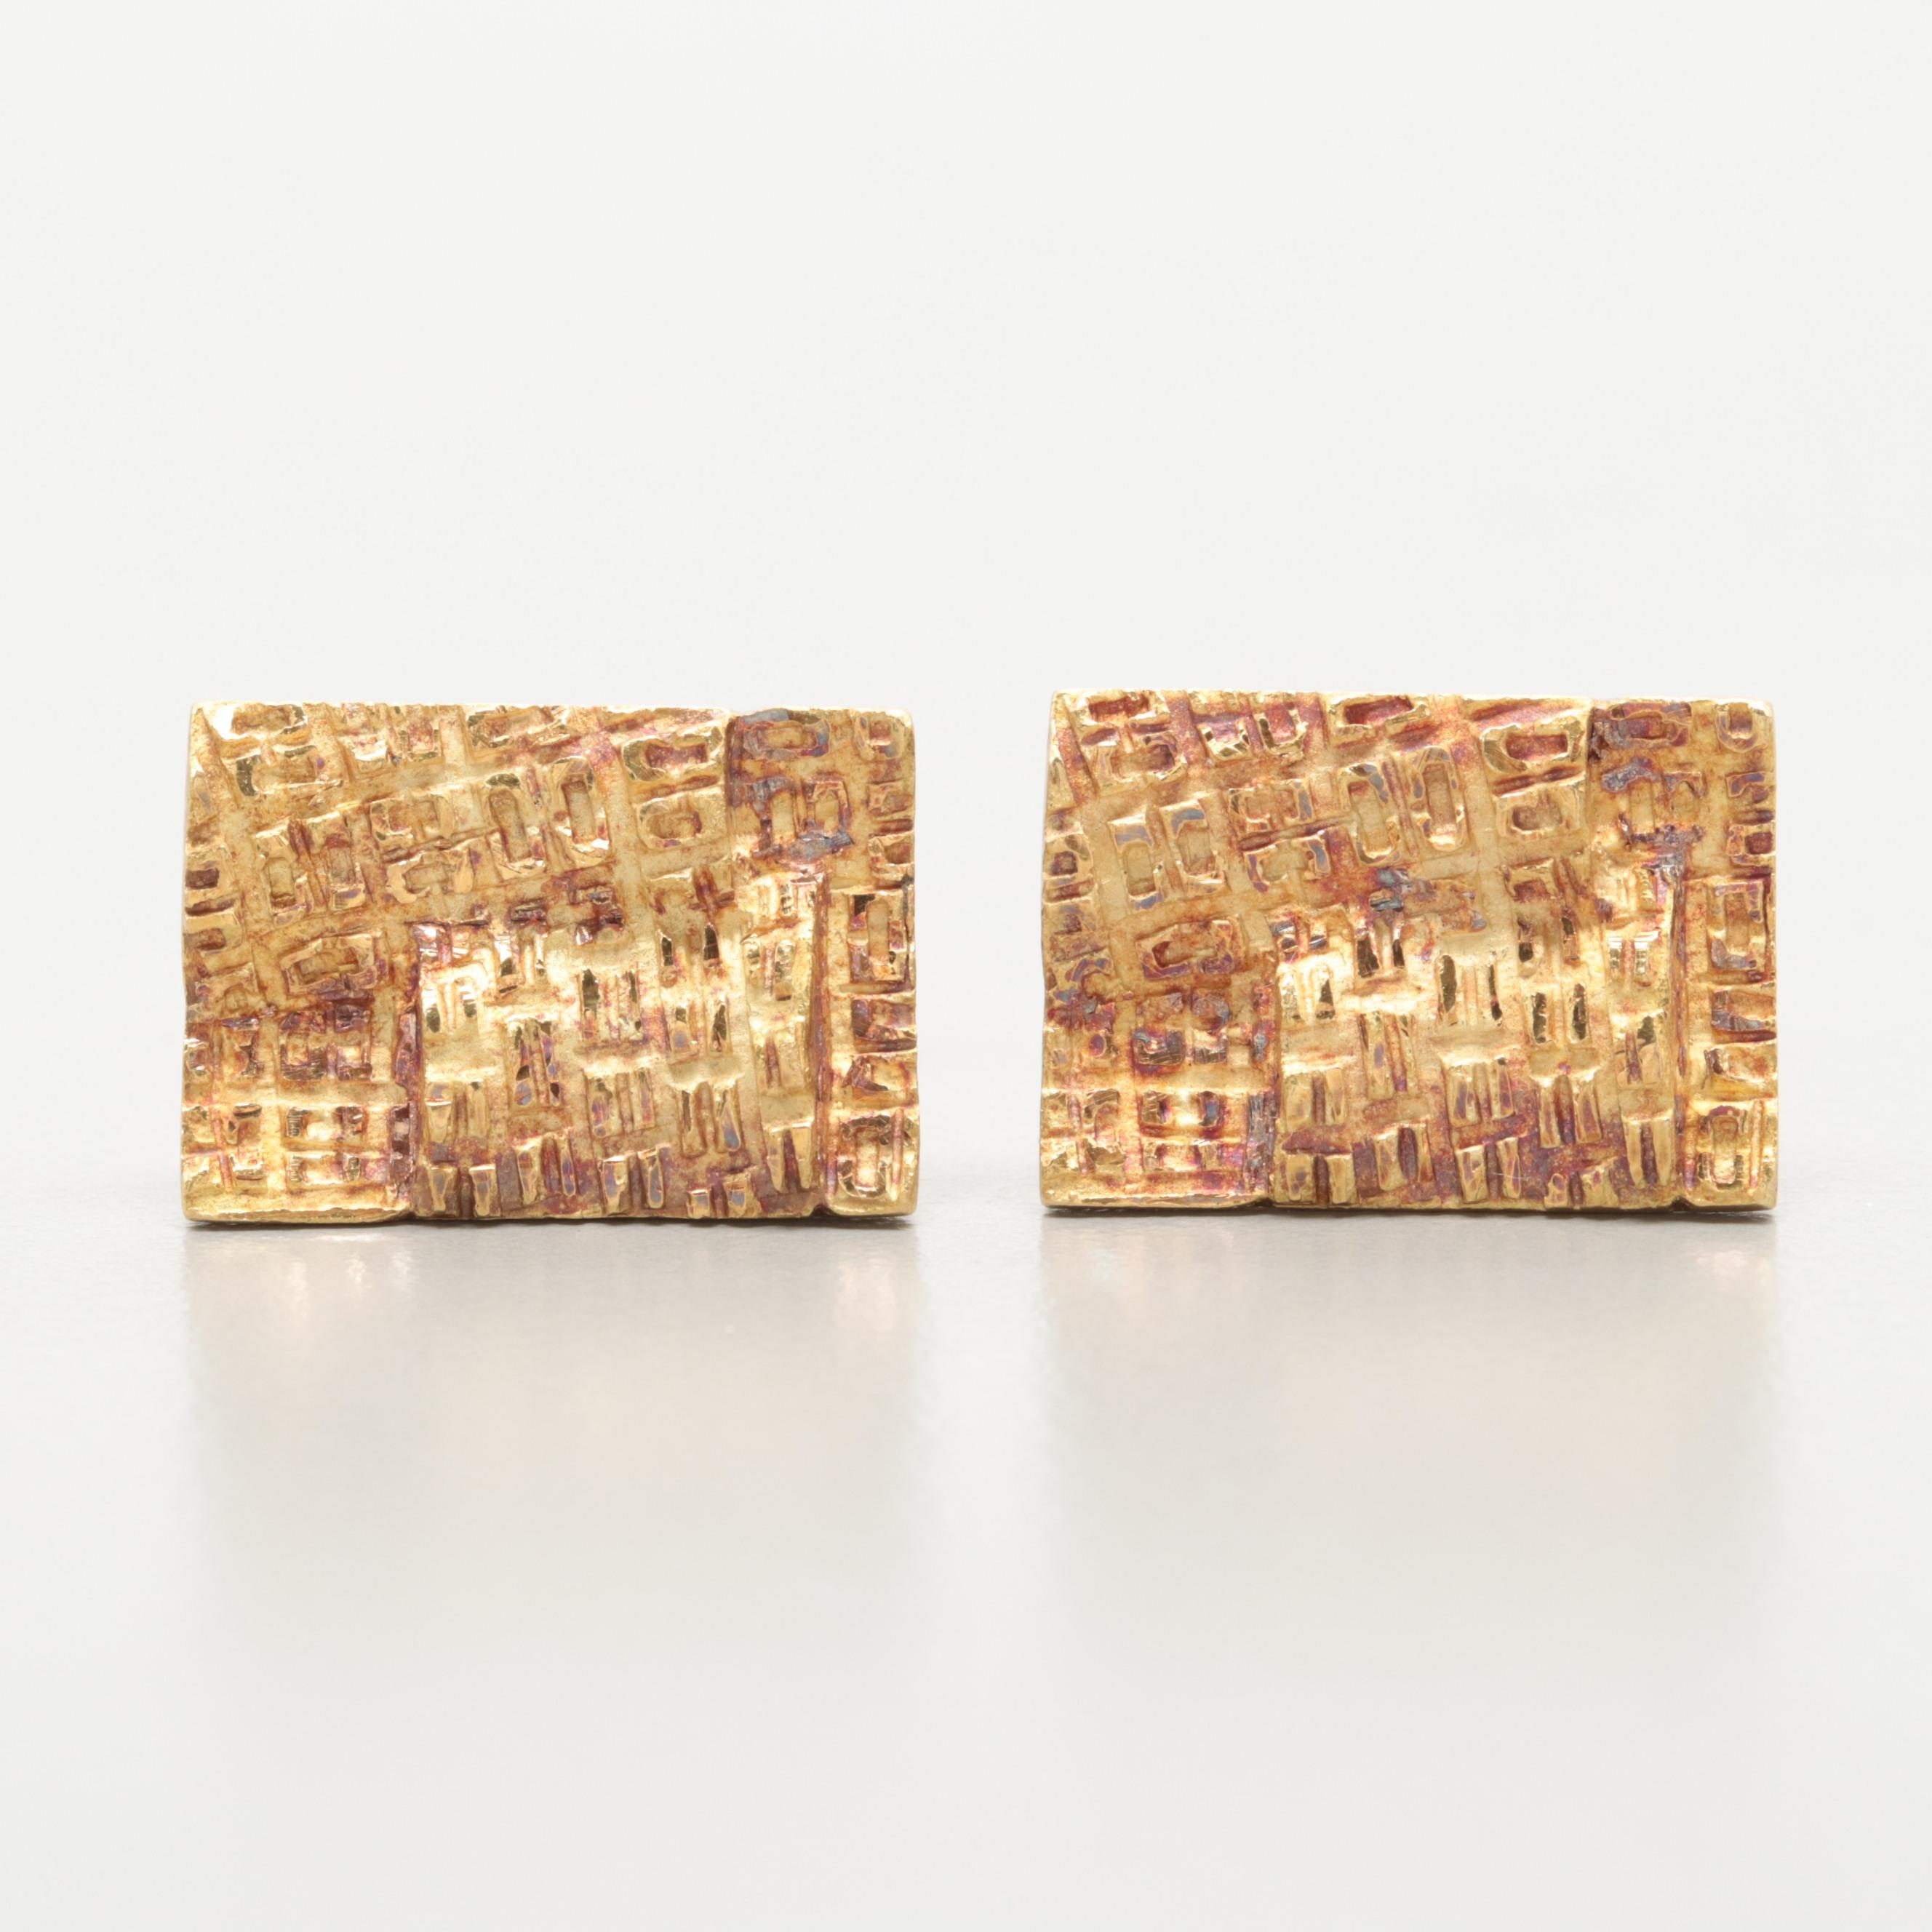 Vintage 18K Yellow Gold Cuff Links